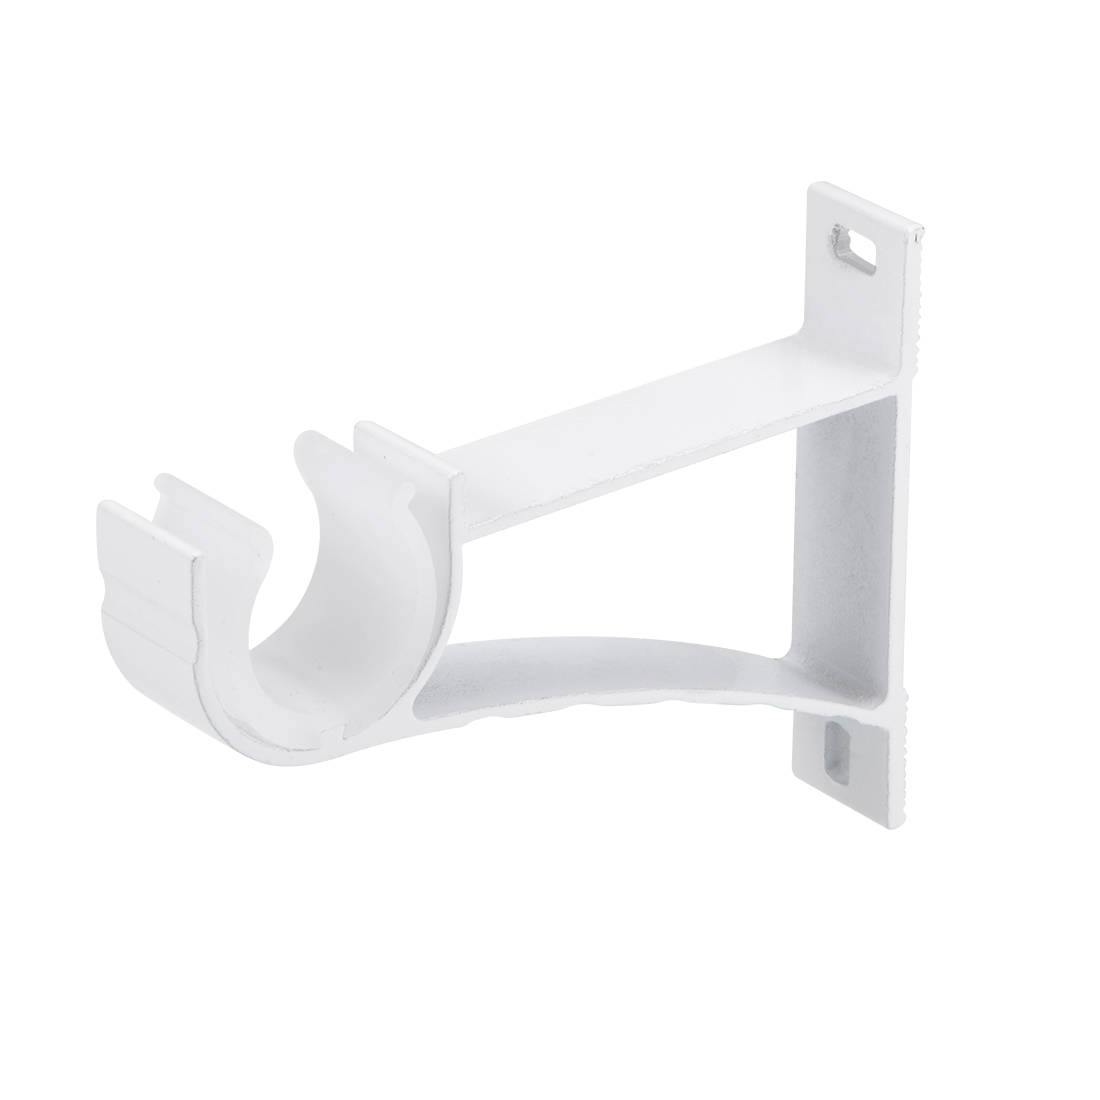 Curtain Rod Bracket Single Holder for 24mm Rod 108 x 82 x 19mm Milky White